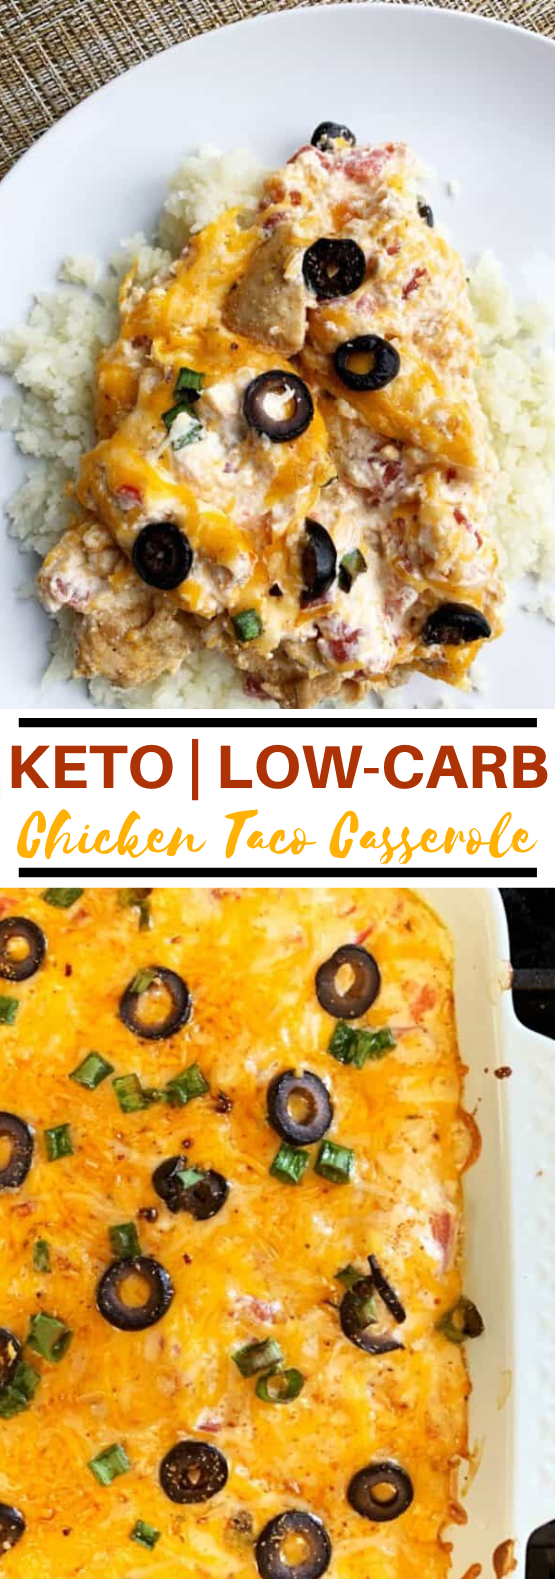 KETO CHICKEN TACO CASSEROLE #lowcarb #dinner #keto #diet #casserole